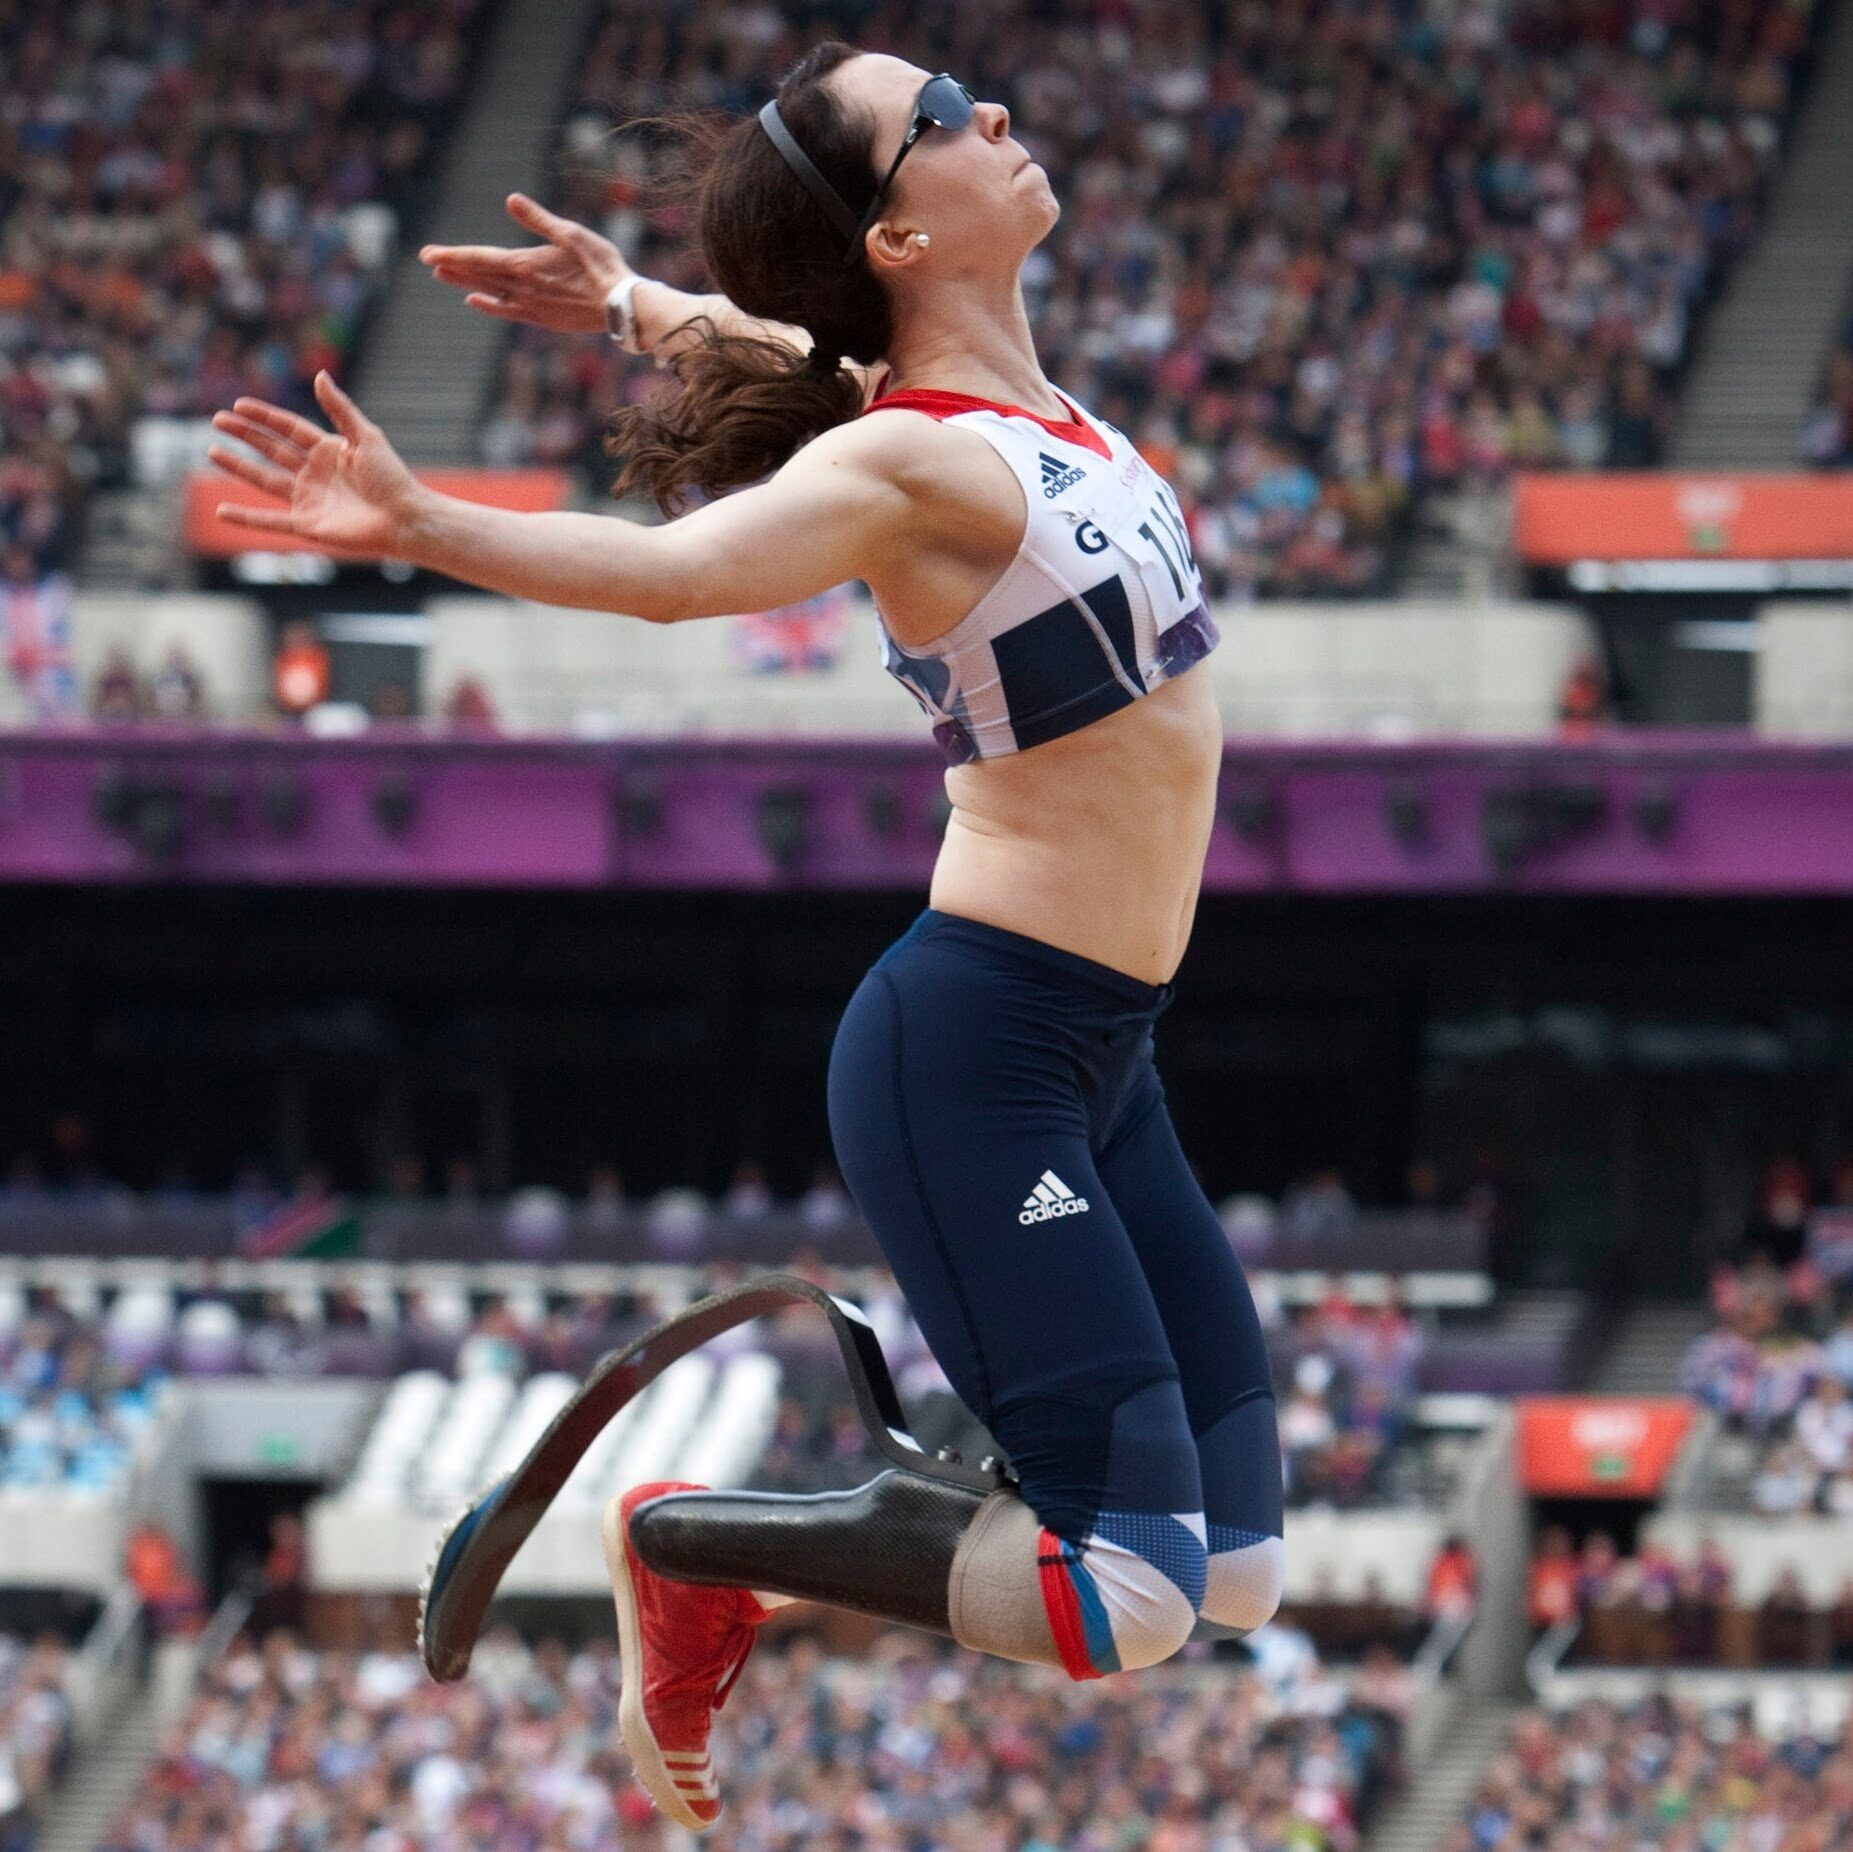 LONDON, UNITED KINGDOM - SEPTEMBER 02: Stef Reid of Great Britain competes in the Women's Long Jump F42/F44 on day 4 of the London 2012 Paralympic Games at Olympic Stadium on September 2, 2012 in London, England. (Photo by Helene Wiesenhaan/Getty Images)